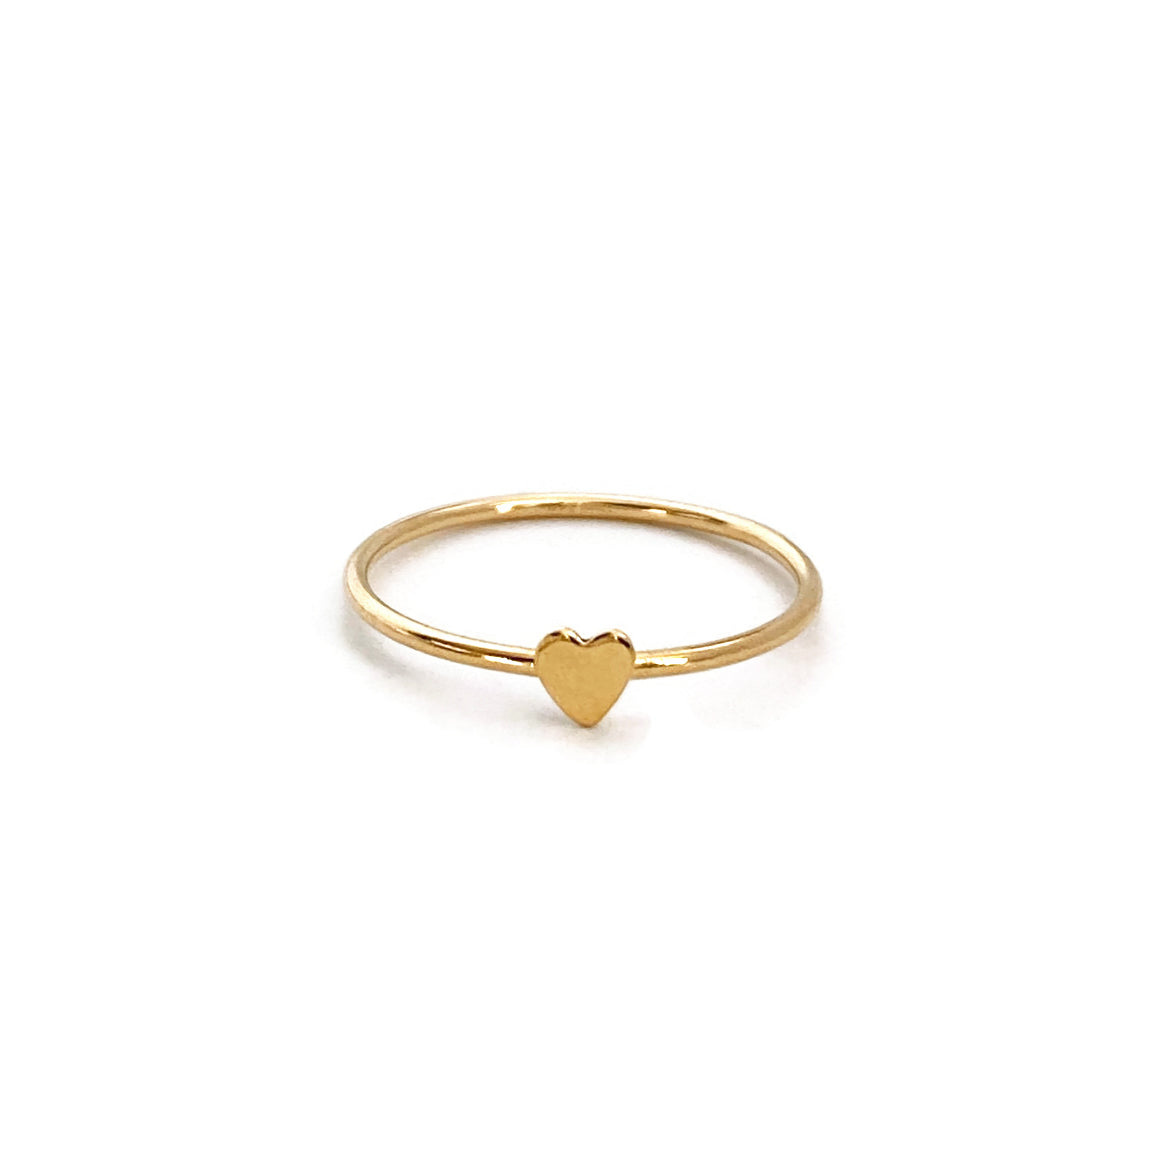 This dainty heart ring is made of gold filled.